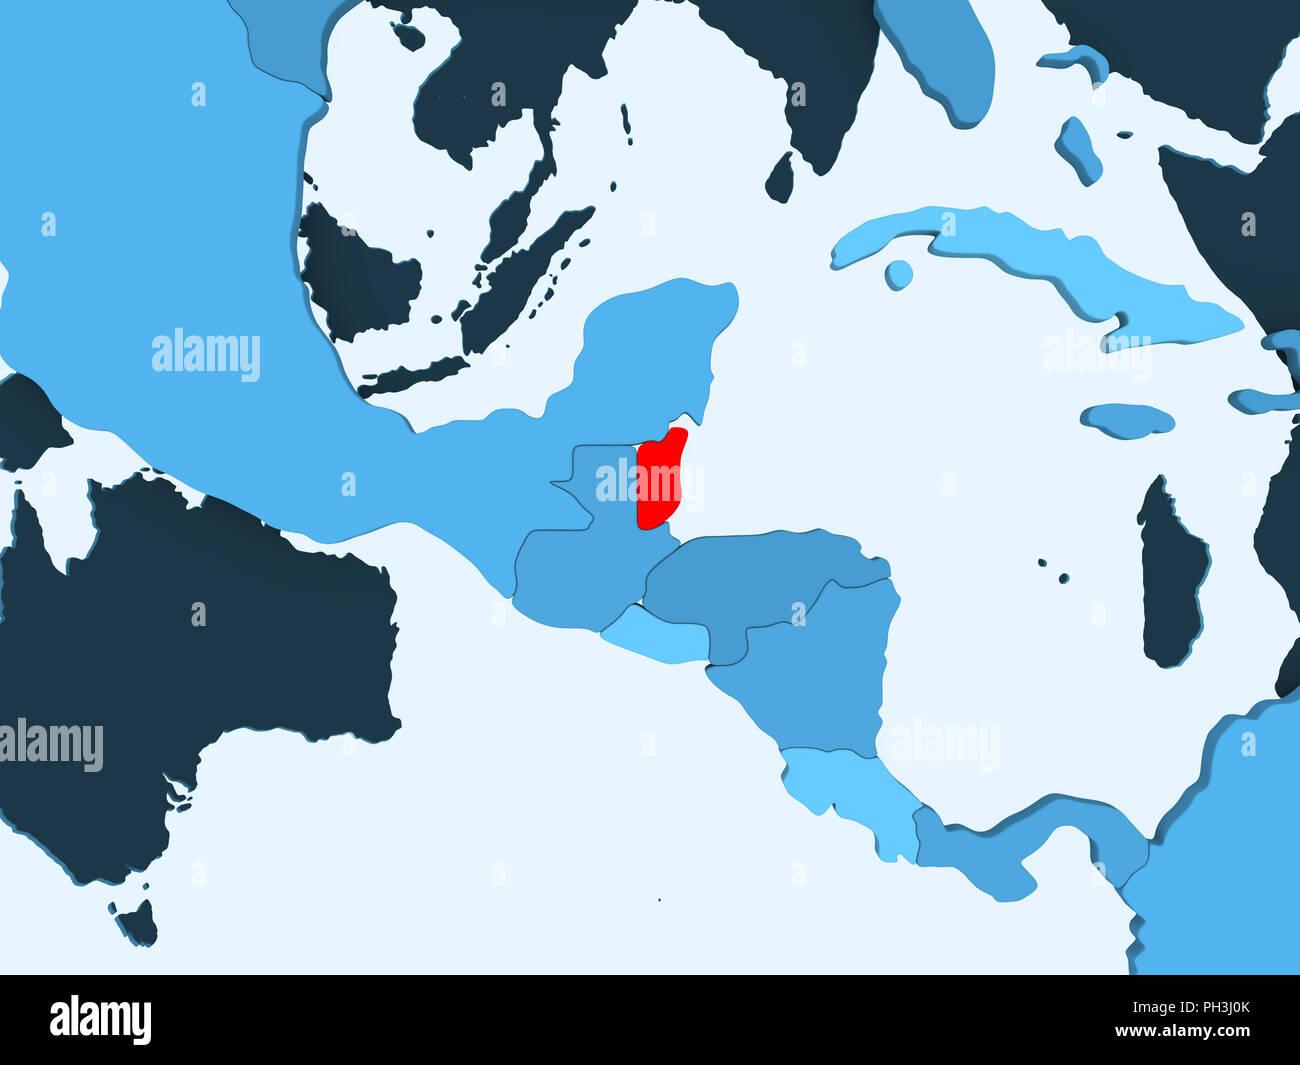 Belize Political Map.Belize In Red On Blue Political Map With Transparent Oceans 3d